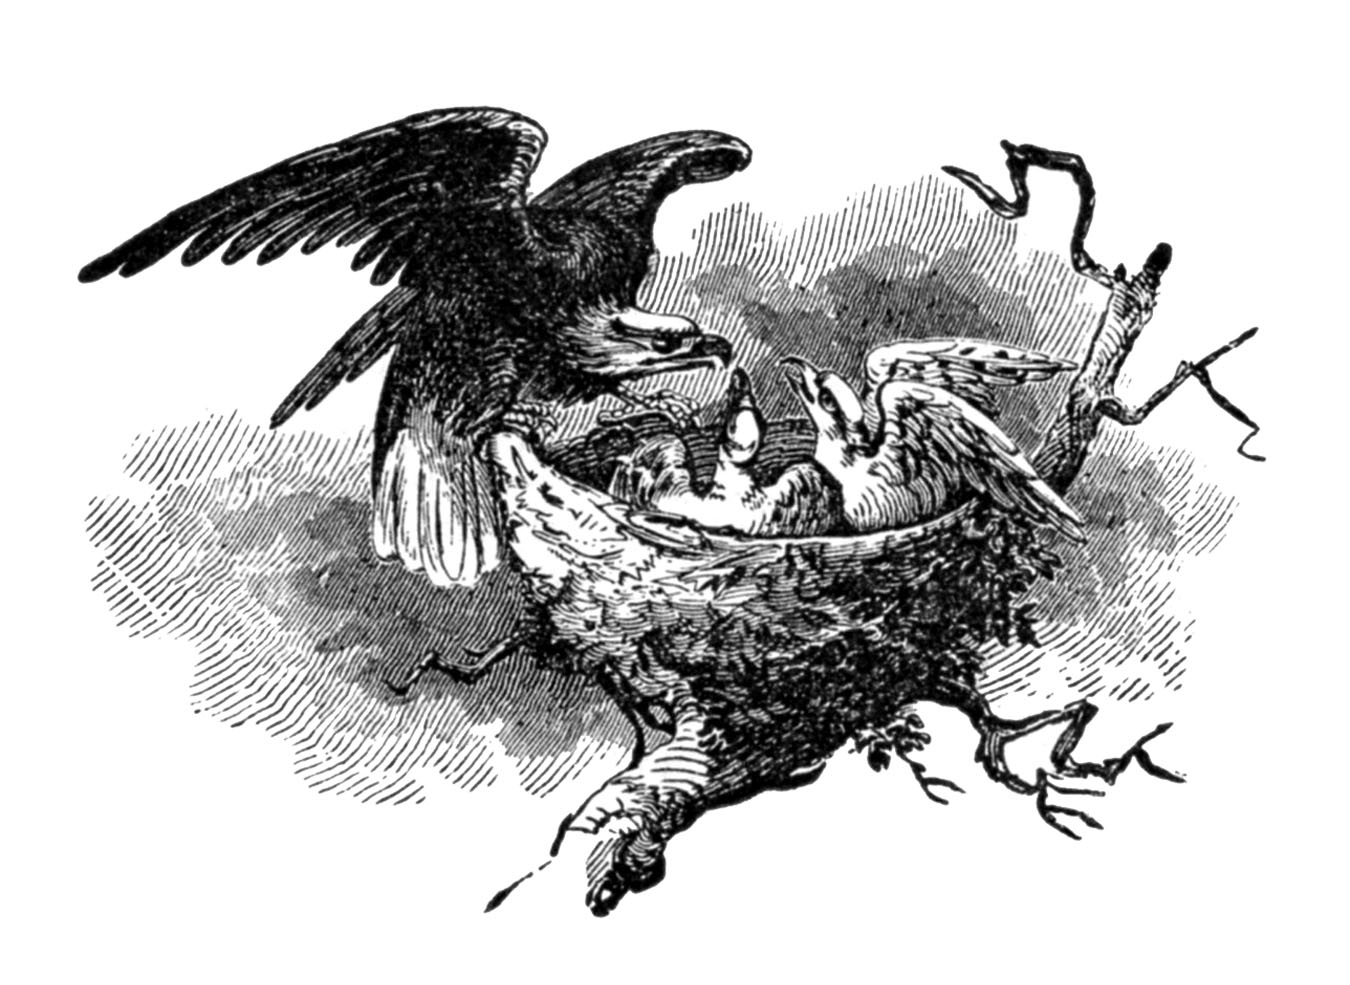 Vintage Clip Art - Eagle with Nest and Babies - The ... (1350 x 985 Pixel)